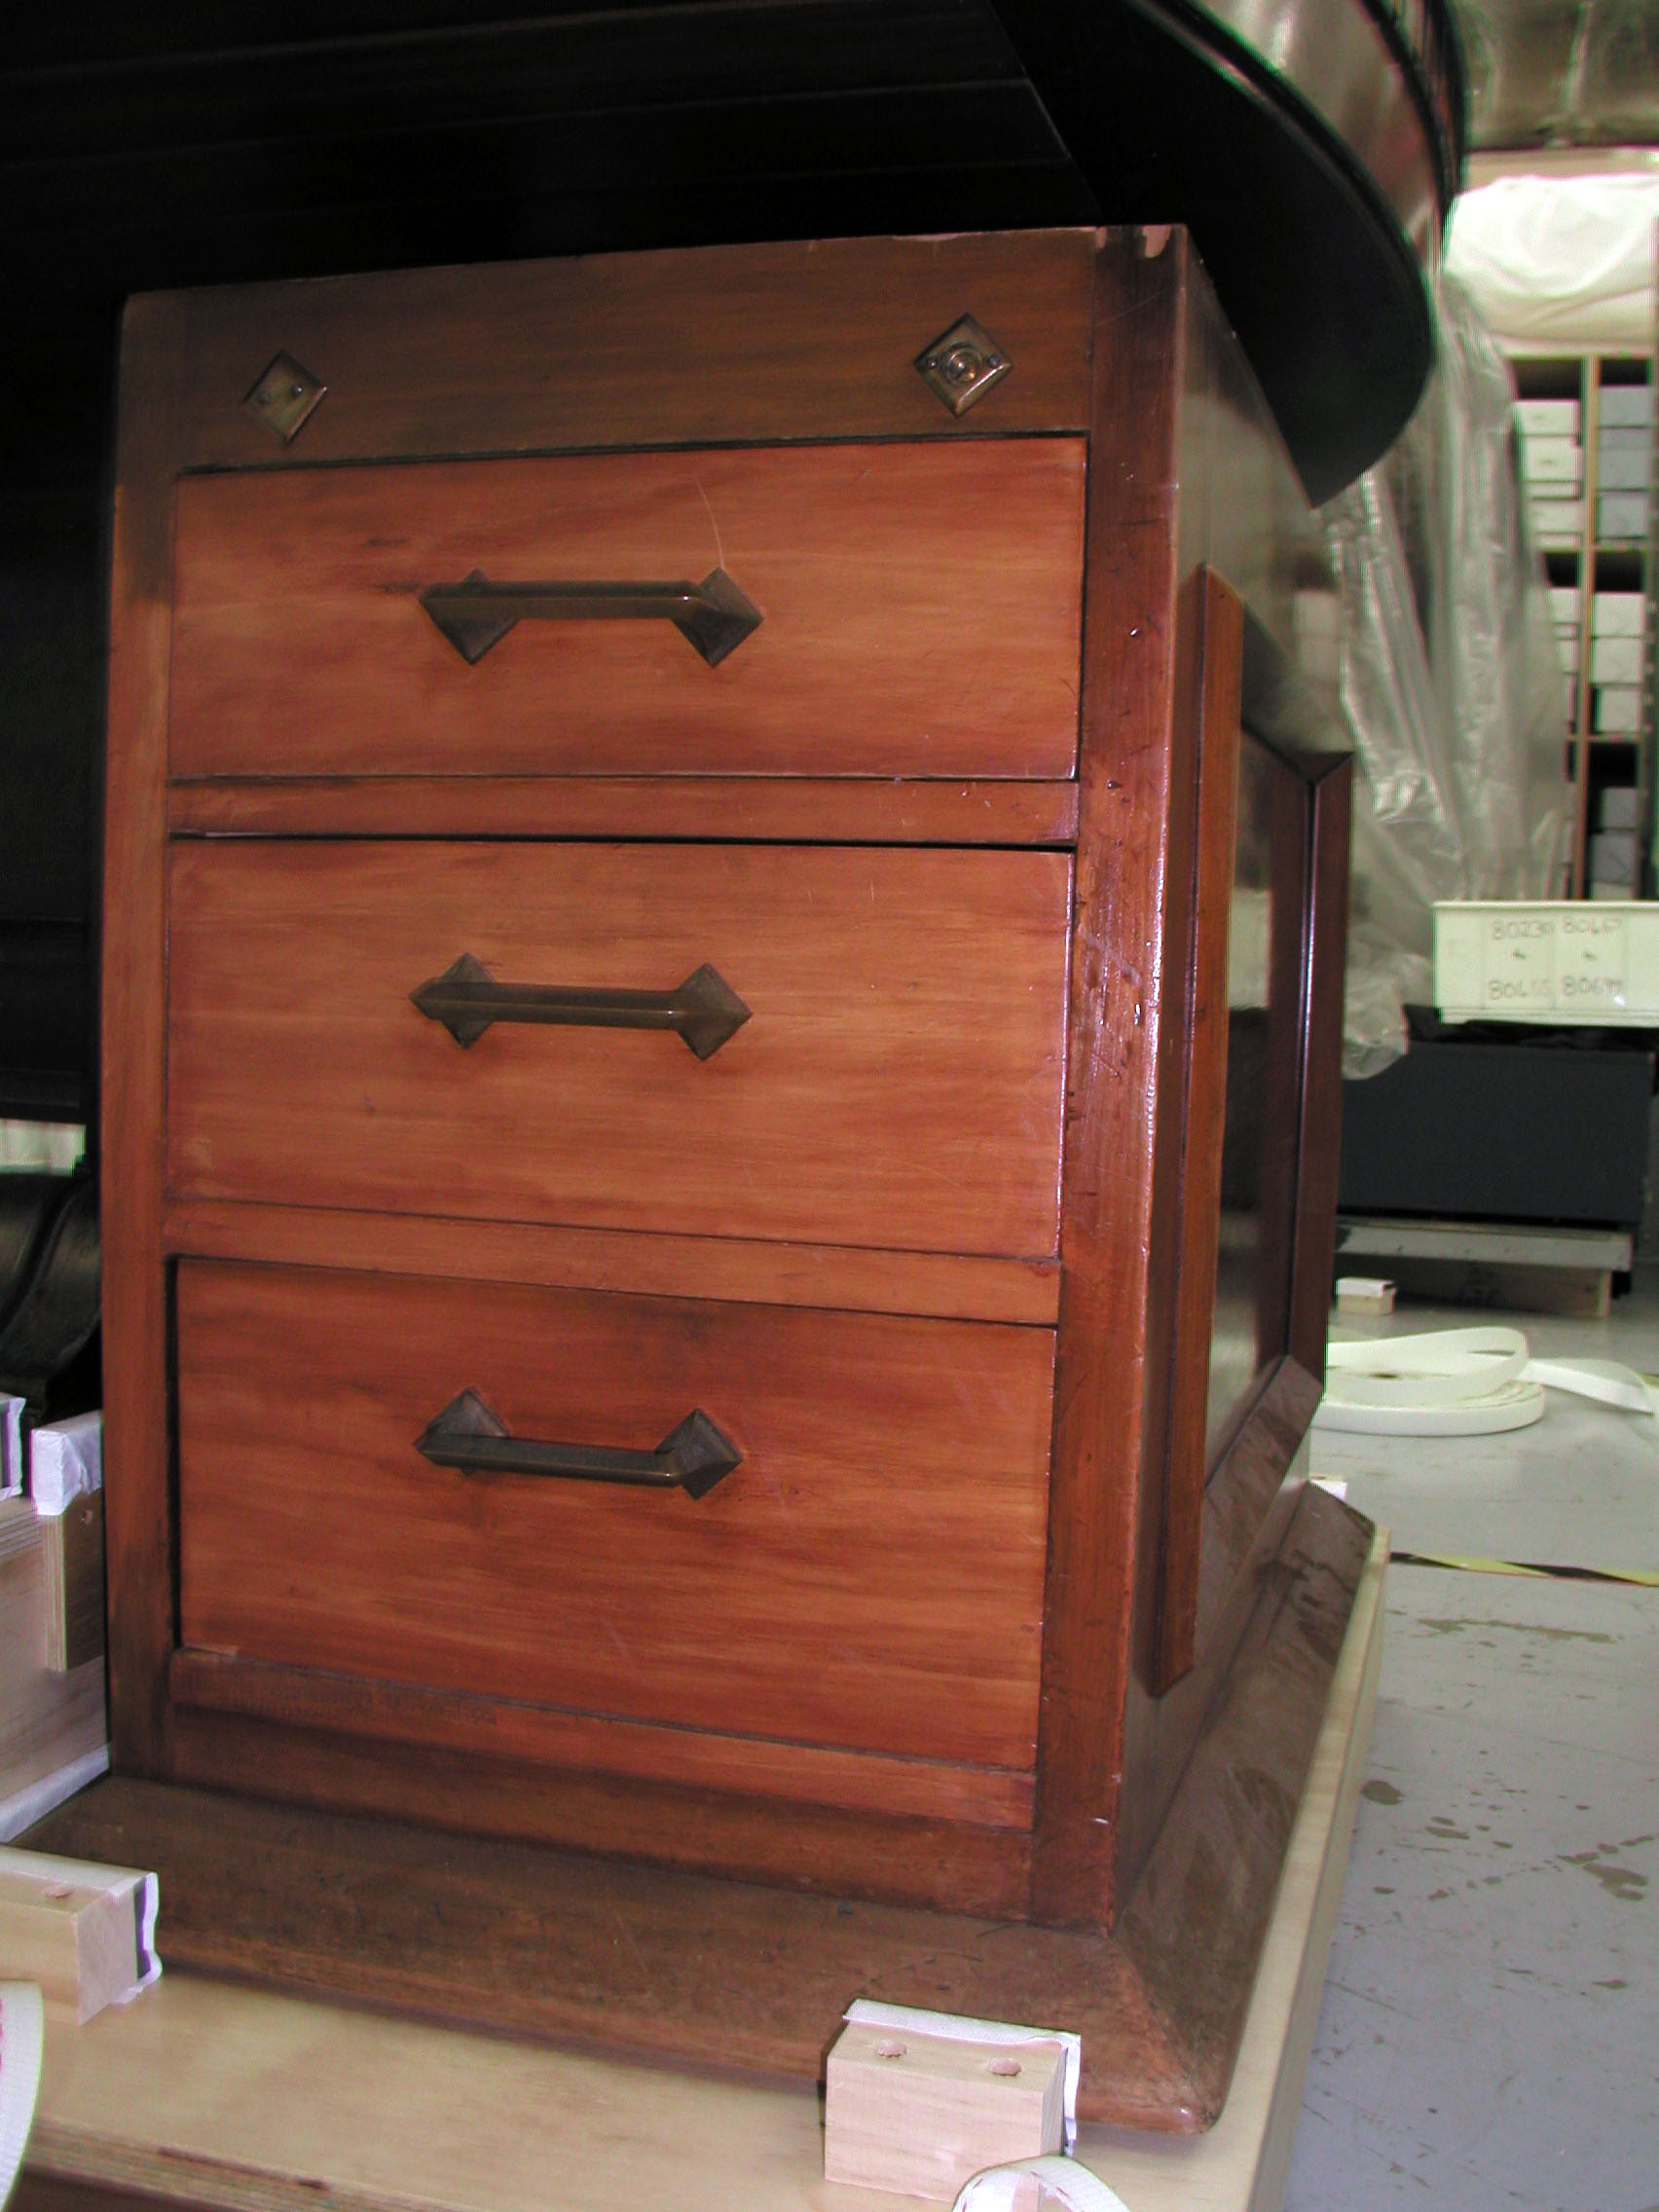 File:Desk drawer units, pair (AM 33.33.33-33).jpg - Wikimedia Commons